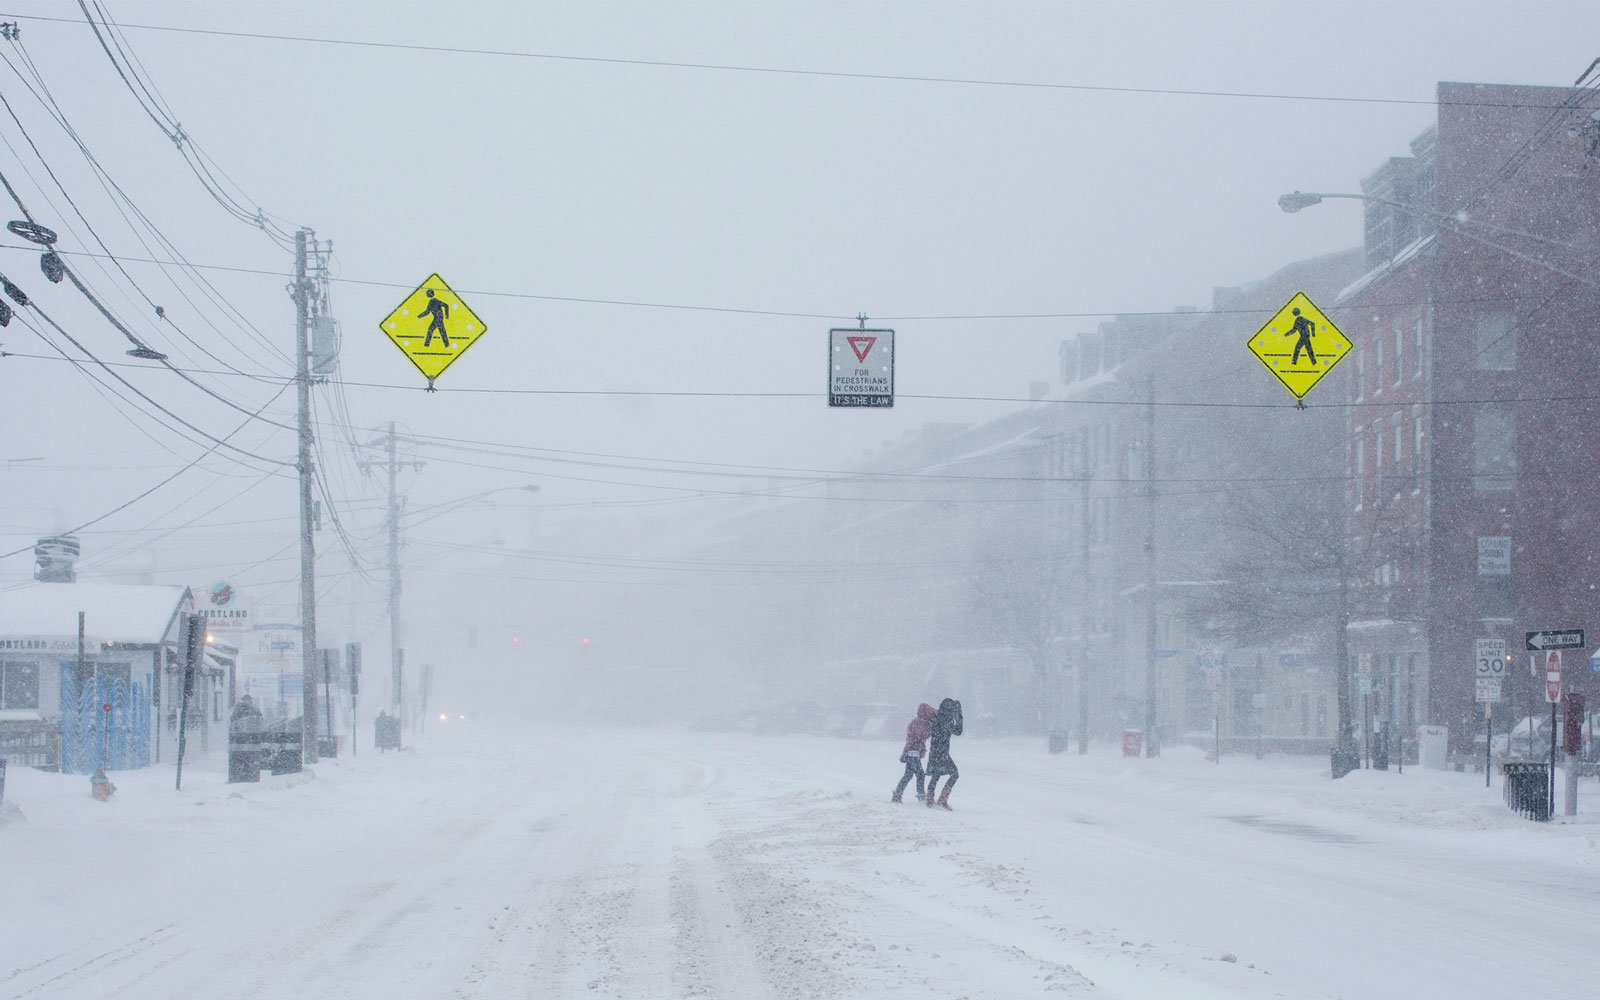 Snowstorm, deep freeze leaves 4 dead in US South